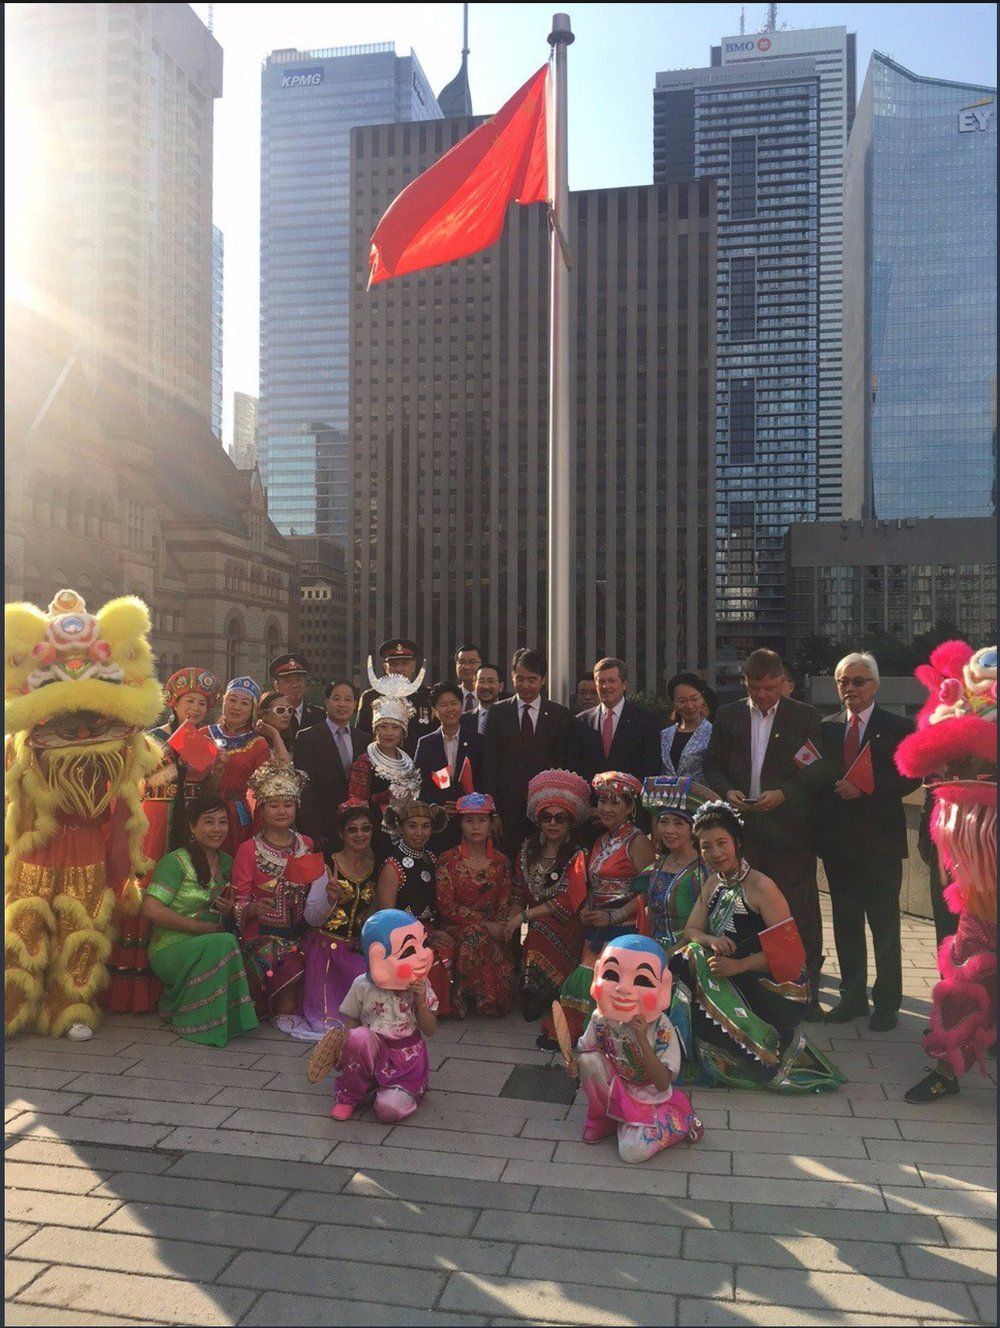 wayland-li-wushu-lion-dance-toronto-city-hall-china-national-day-2017-14.jpg